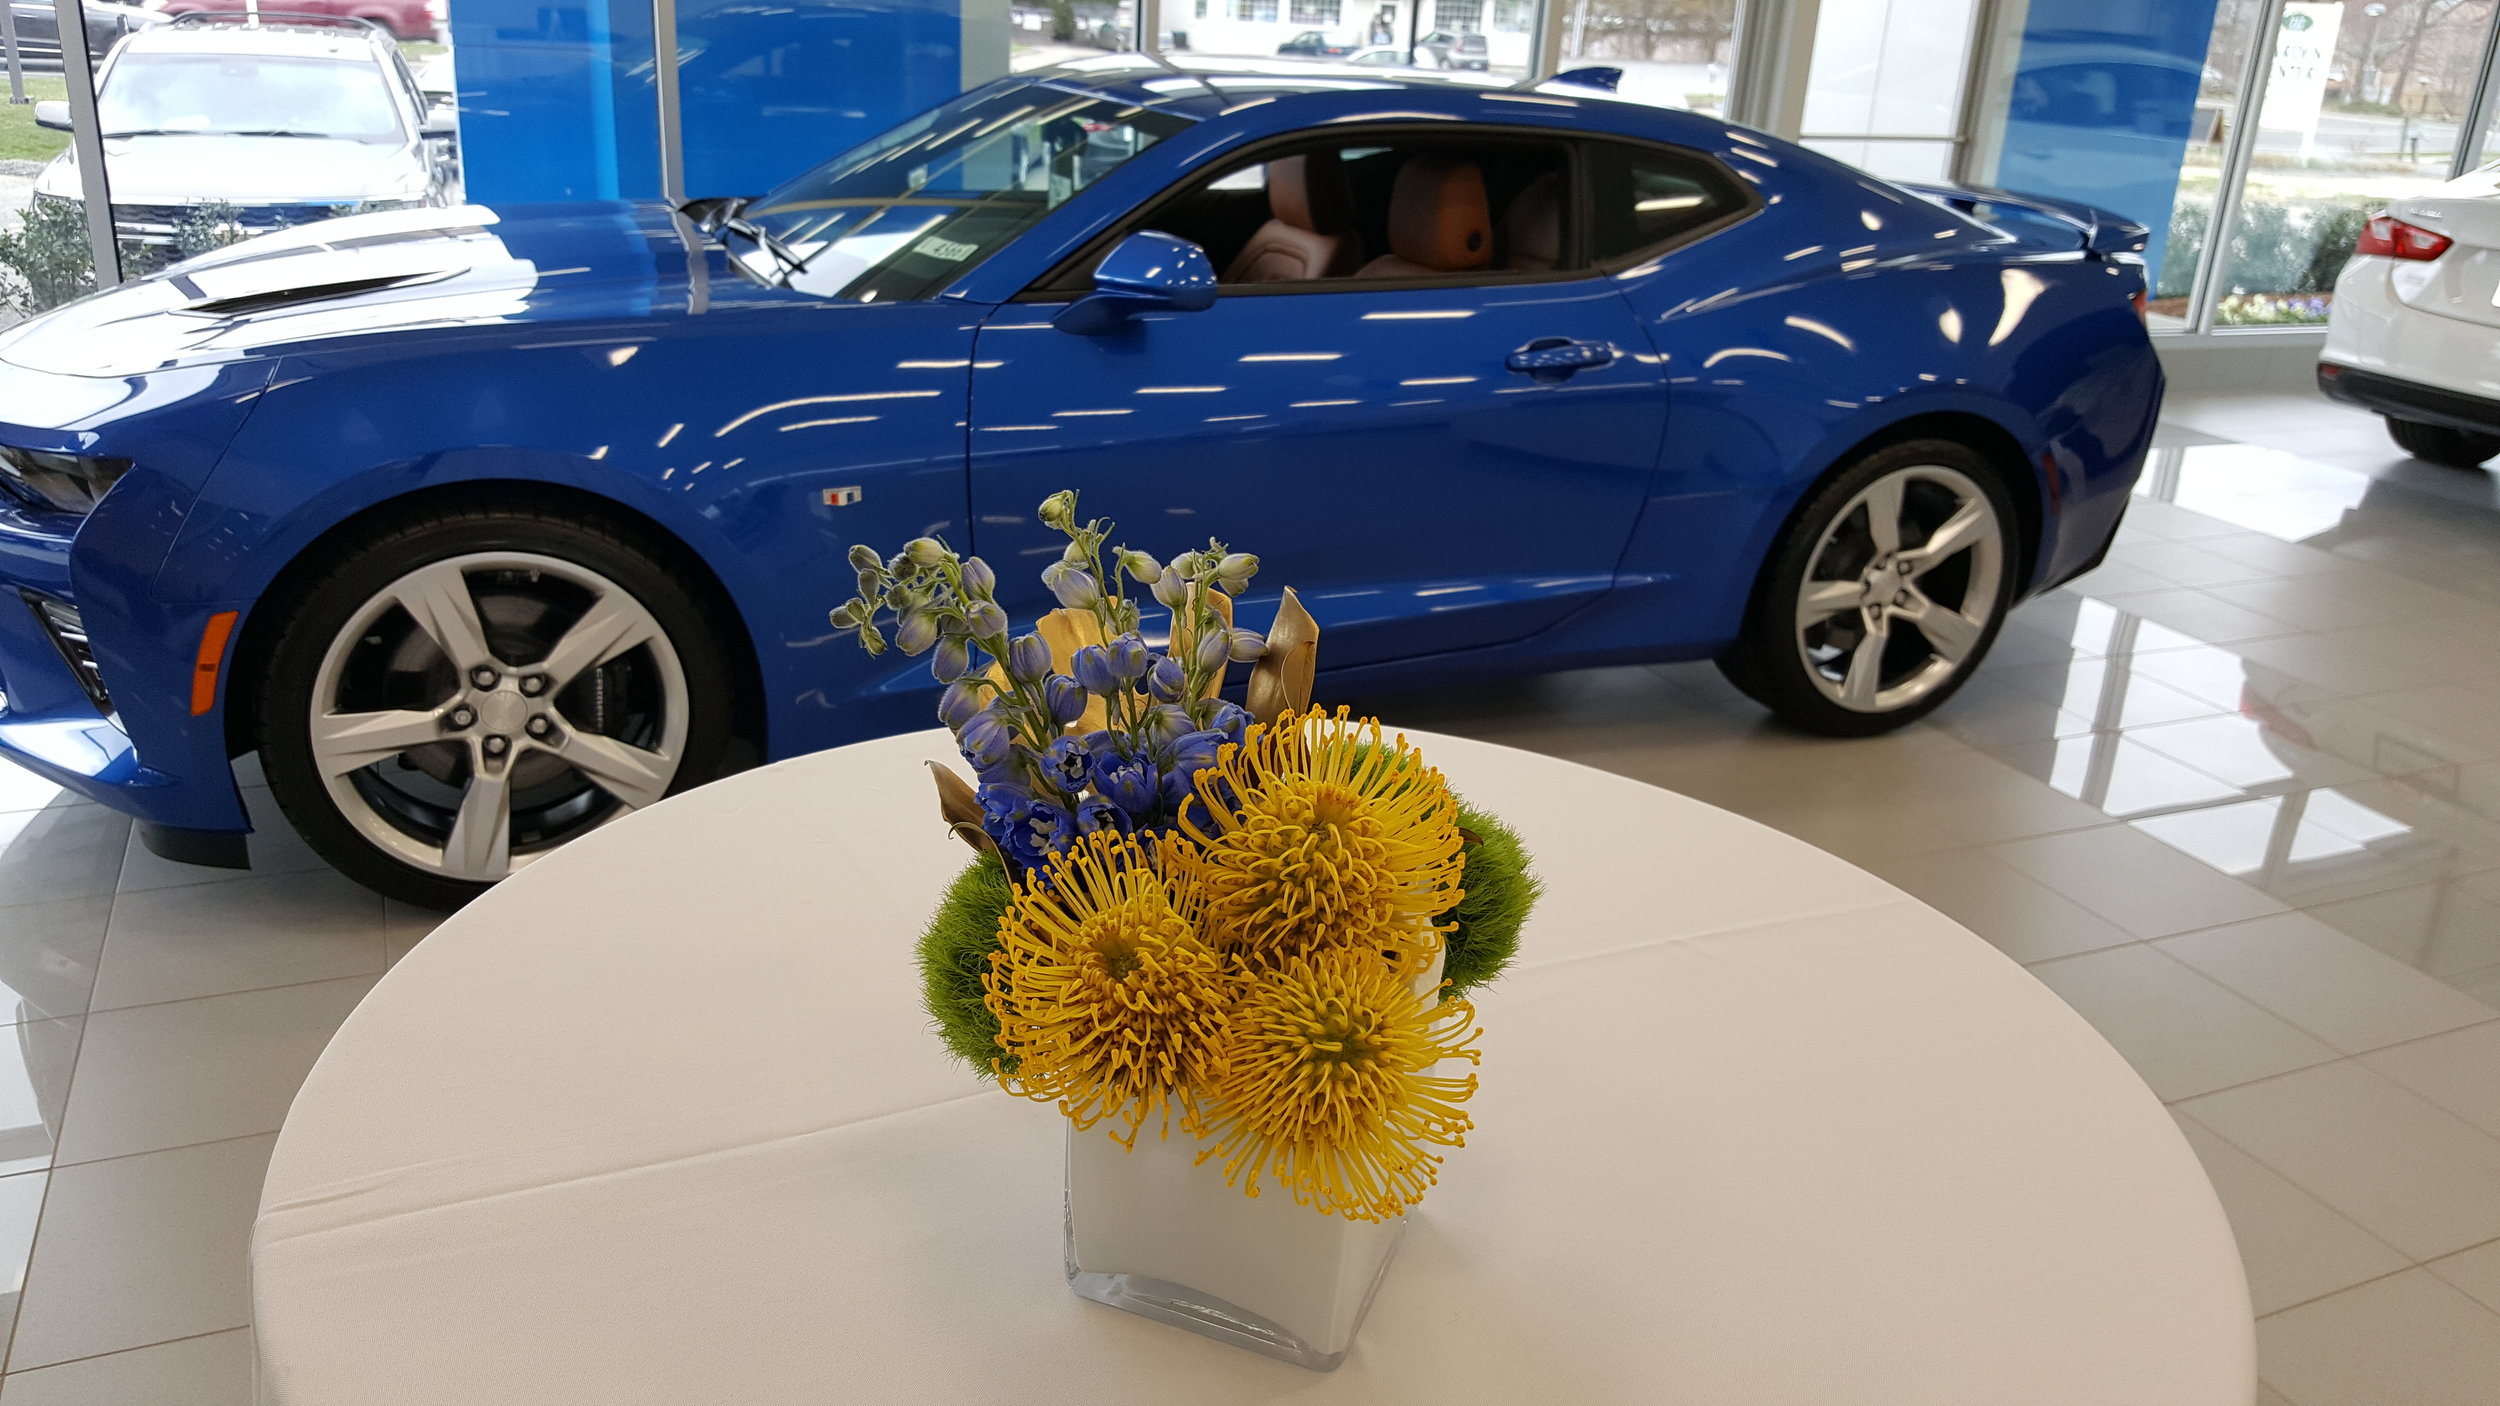 Car dealership floral designs are available from Bouquets & Beyond